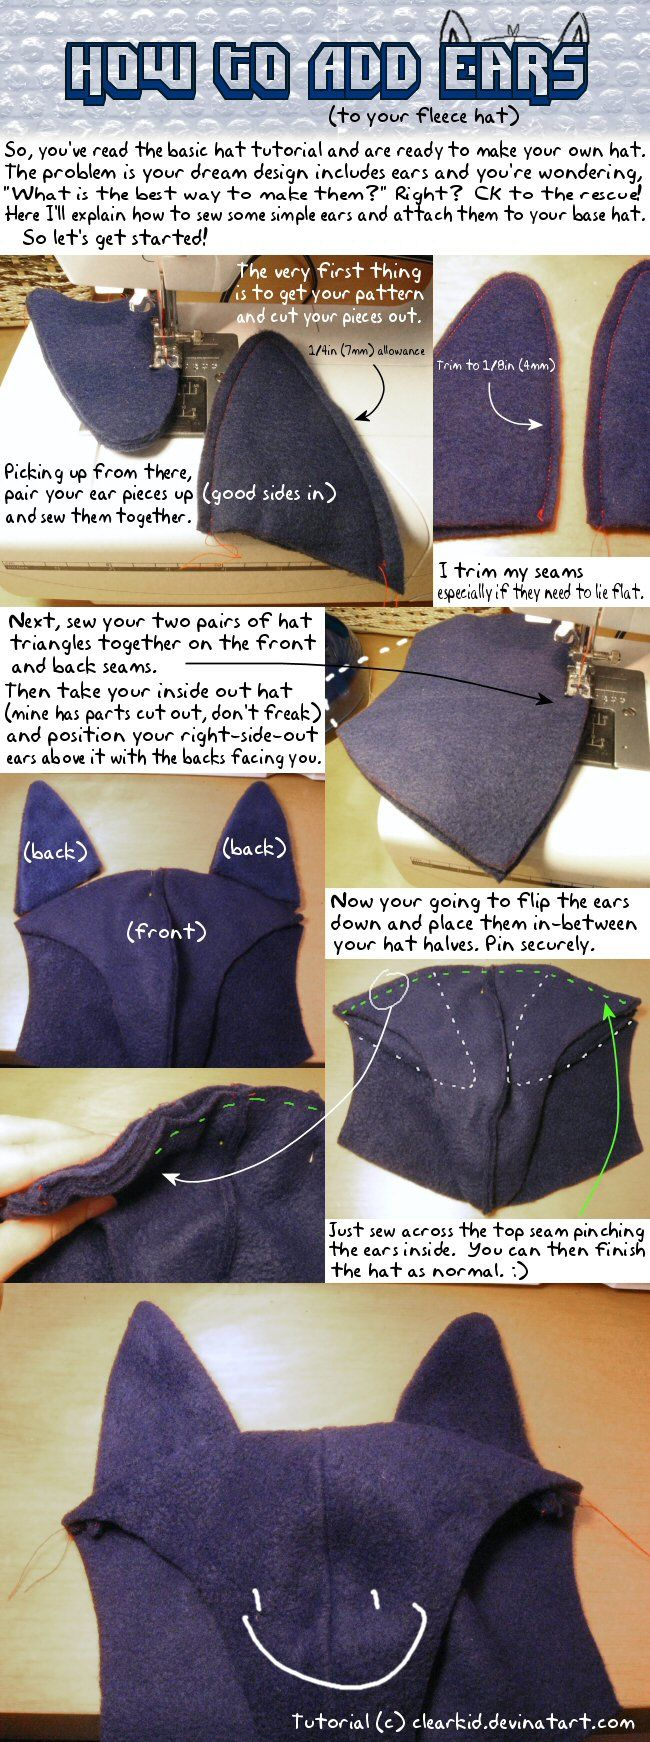 Watch out, it's a big file! Also see how to color fleece eyes to go on your hat. --> How to replace the band with ear-flaps! --> And how to sew on ears! --> Pattern: also notes the size of...